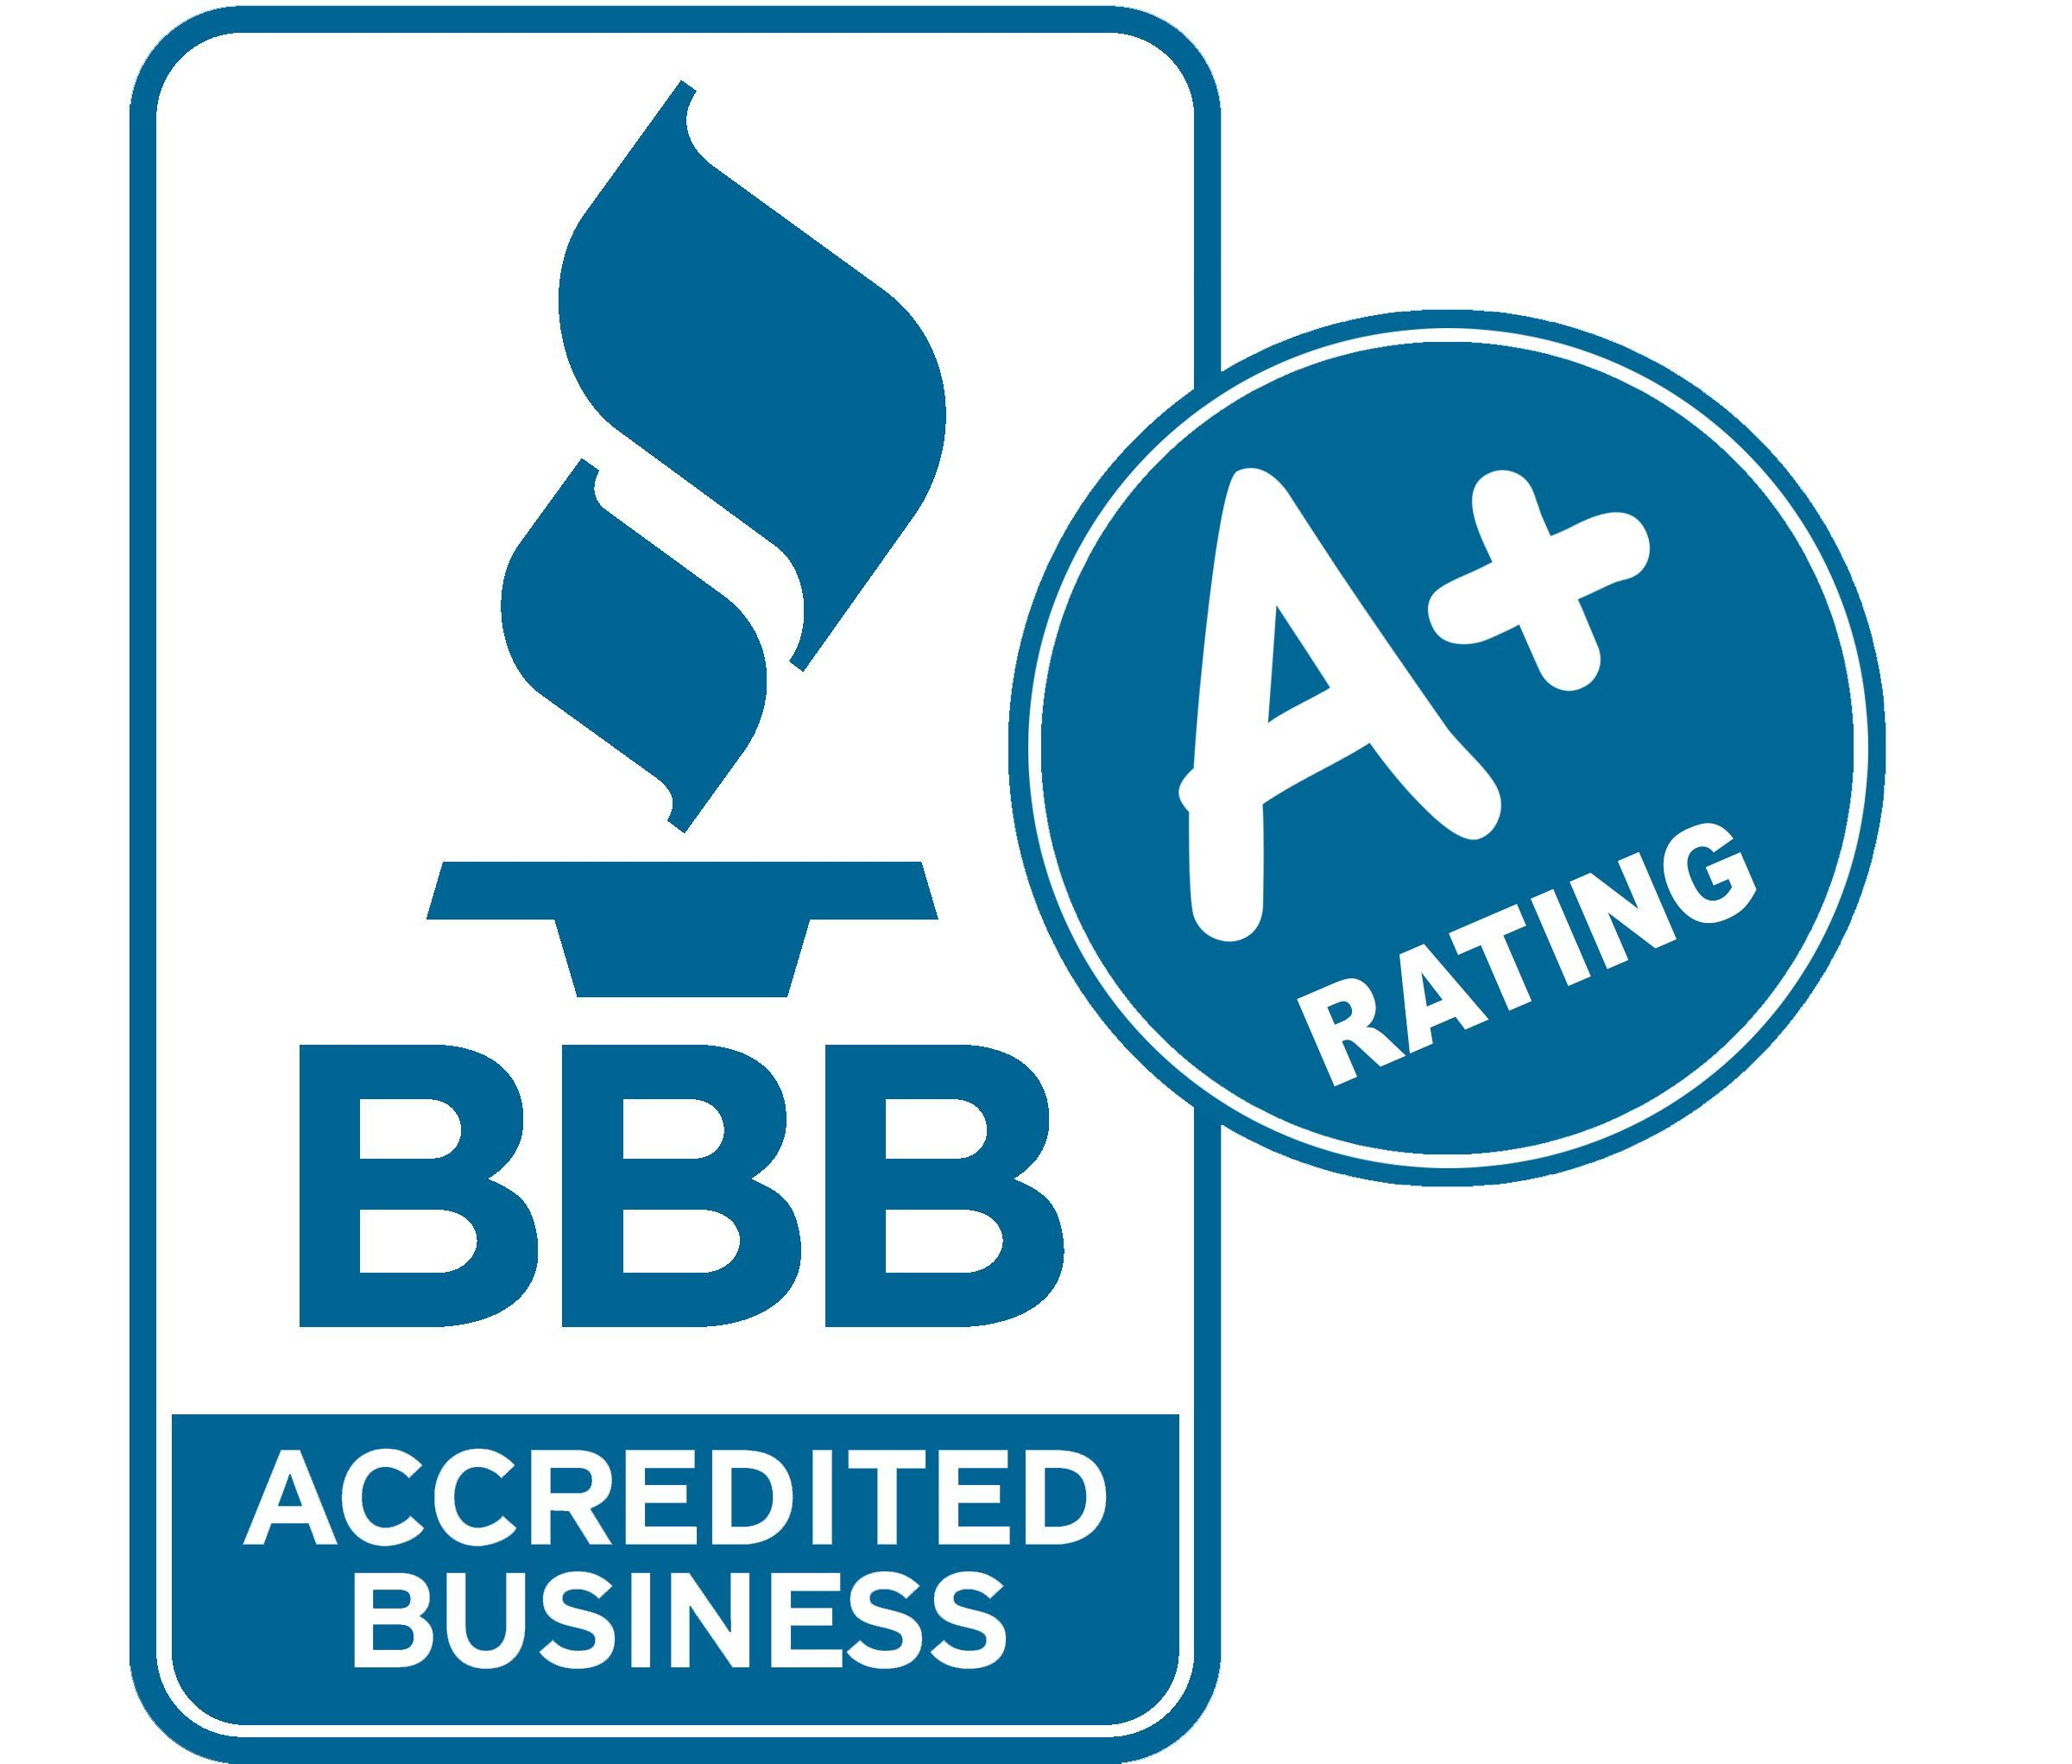 Atlantic Pressure Washers is an accredited business with an A+ rating at the BBB